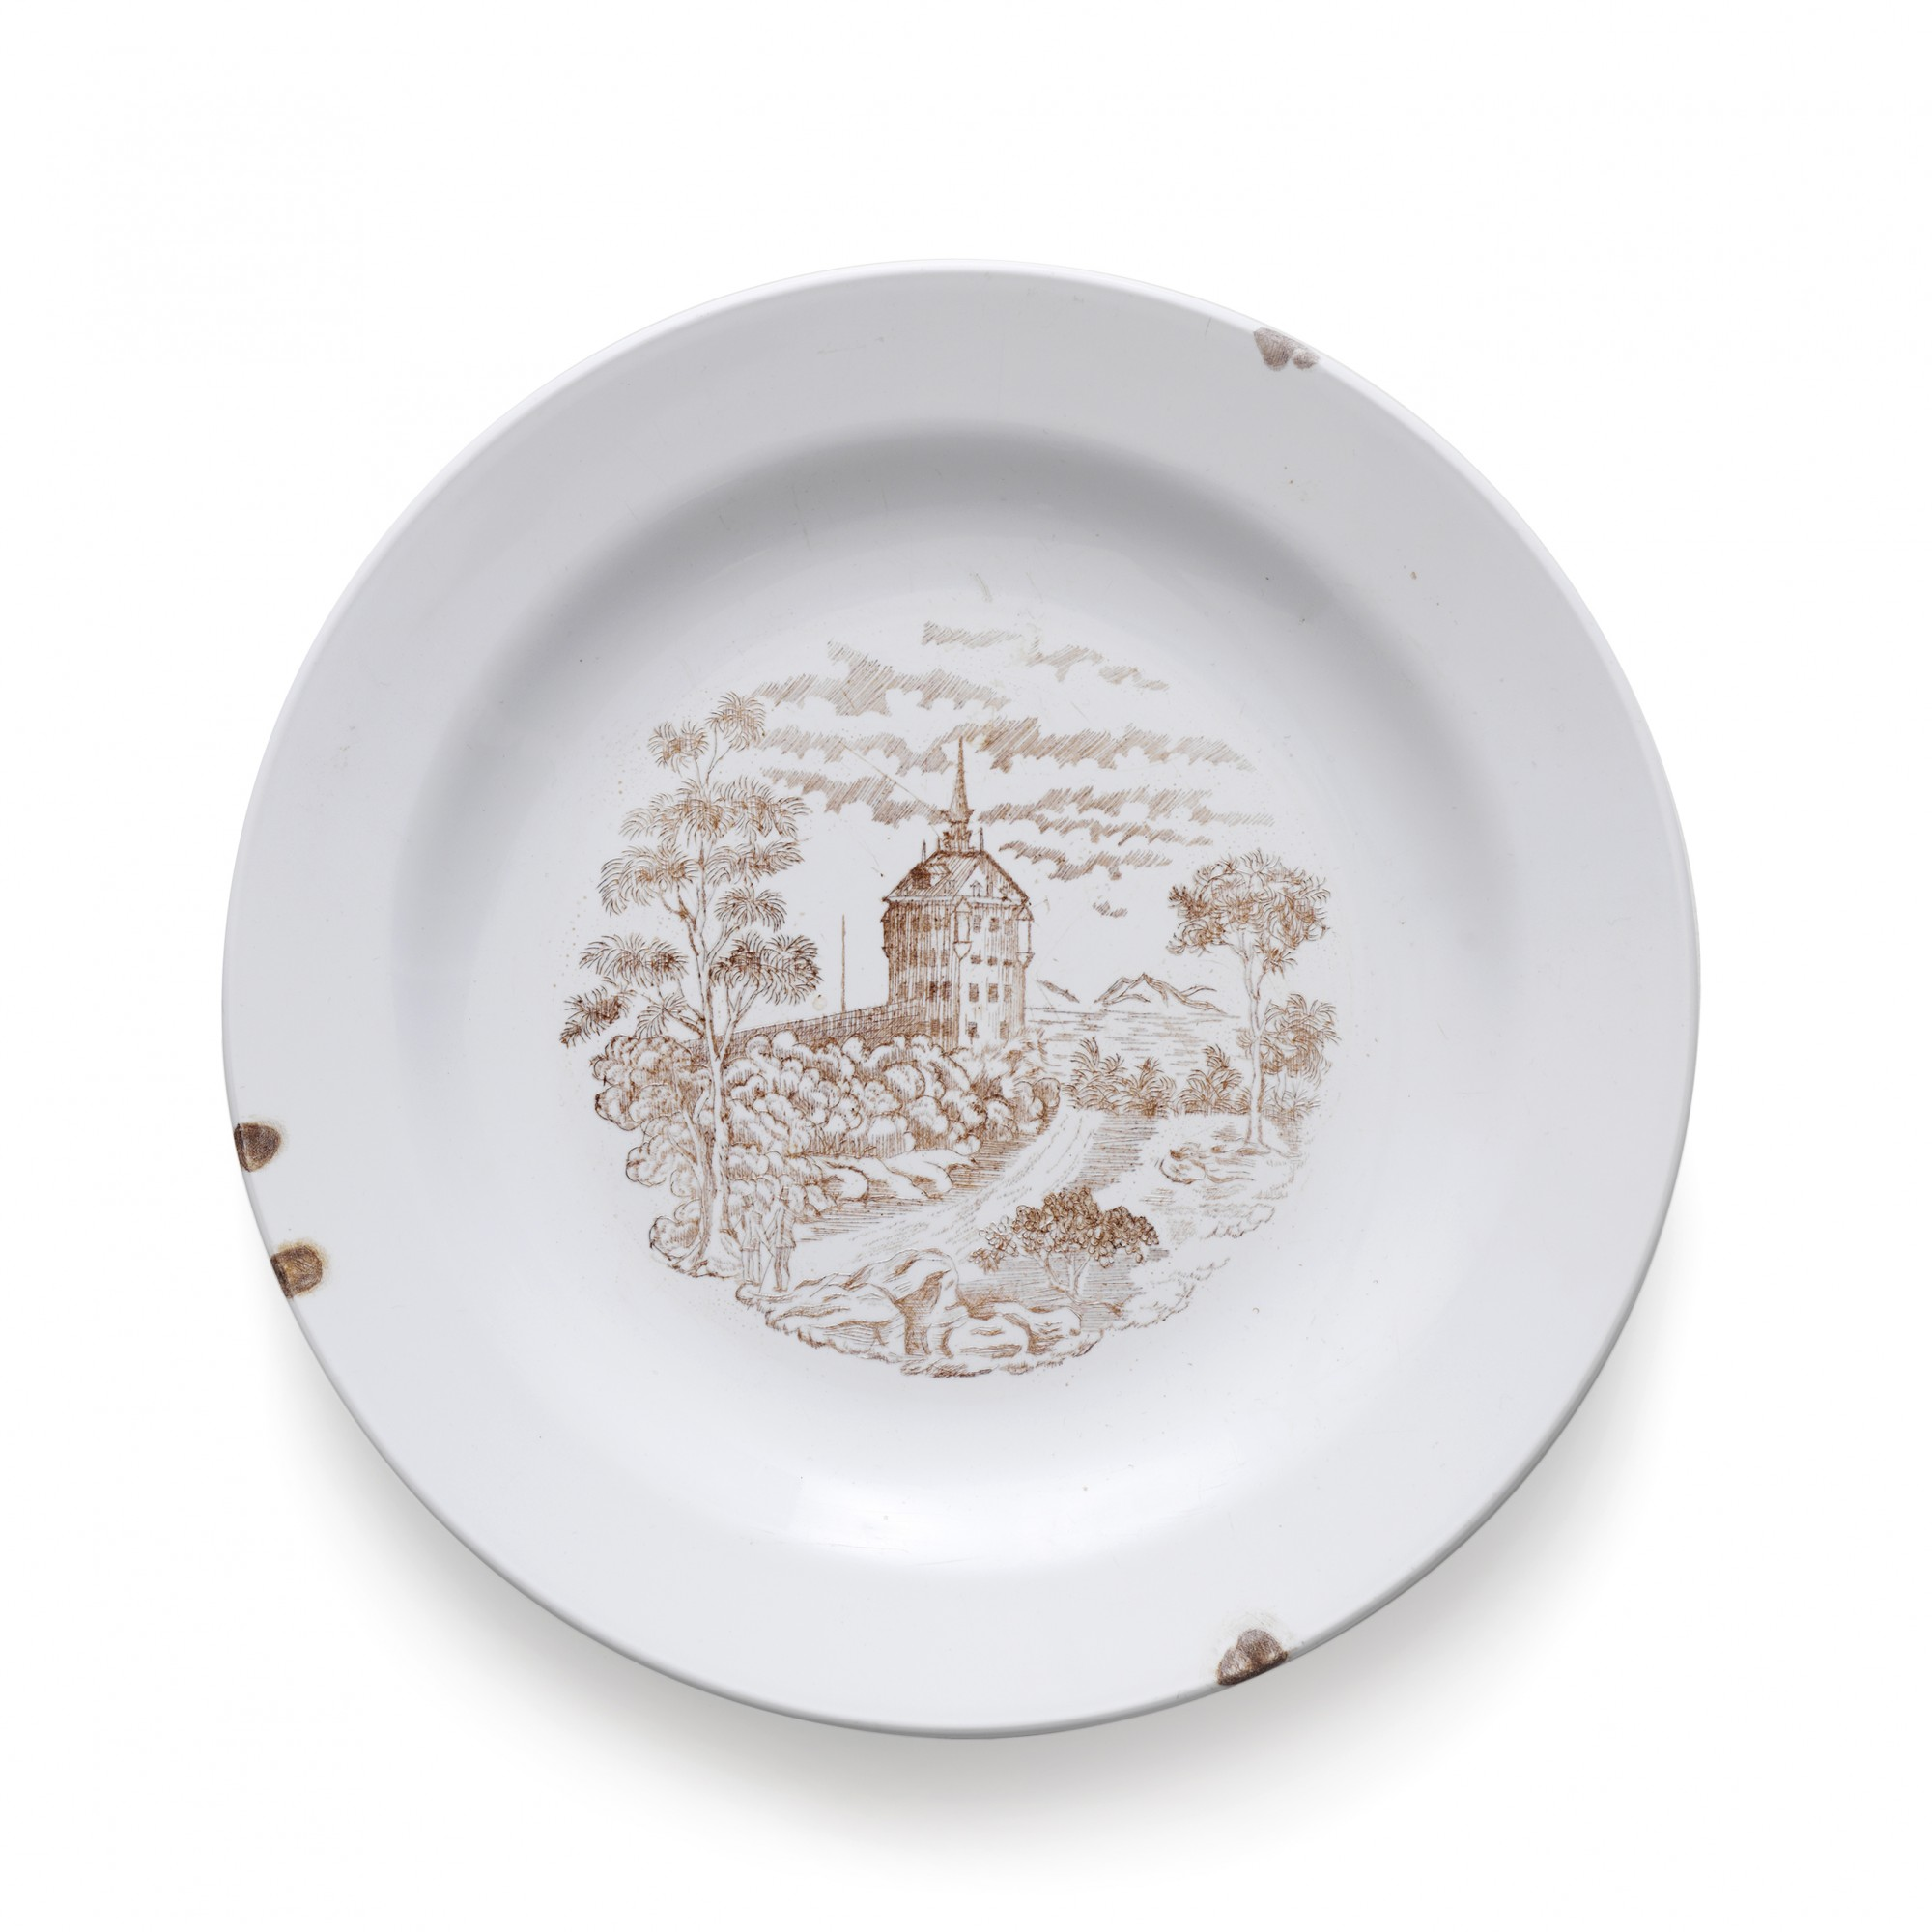 From the series Damaged Goods, 2009. Reworked plastic plate. Ø 23 cm